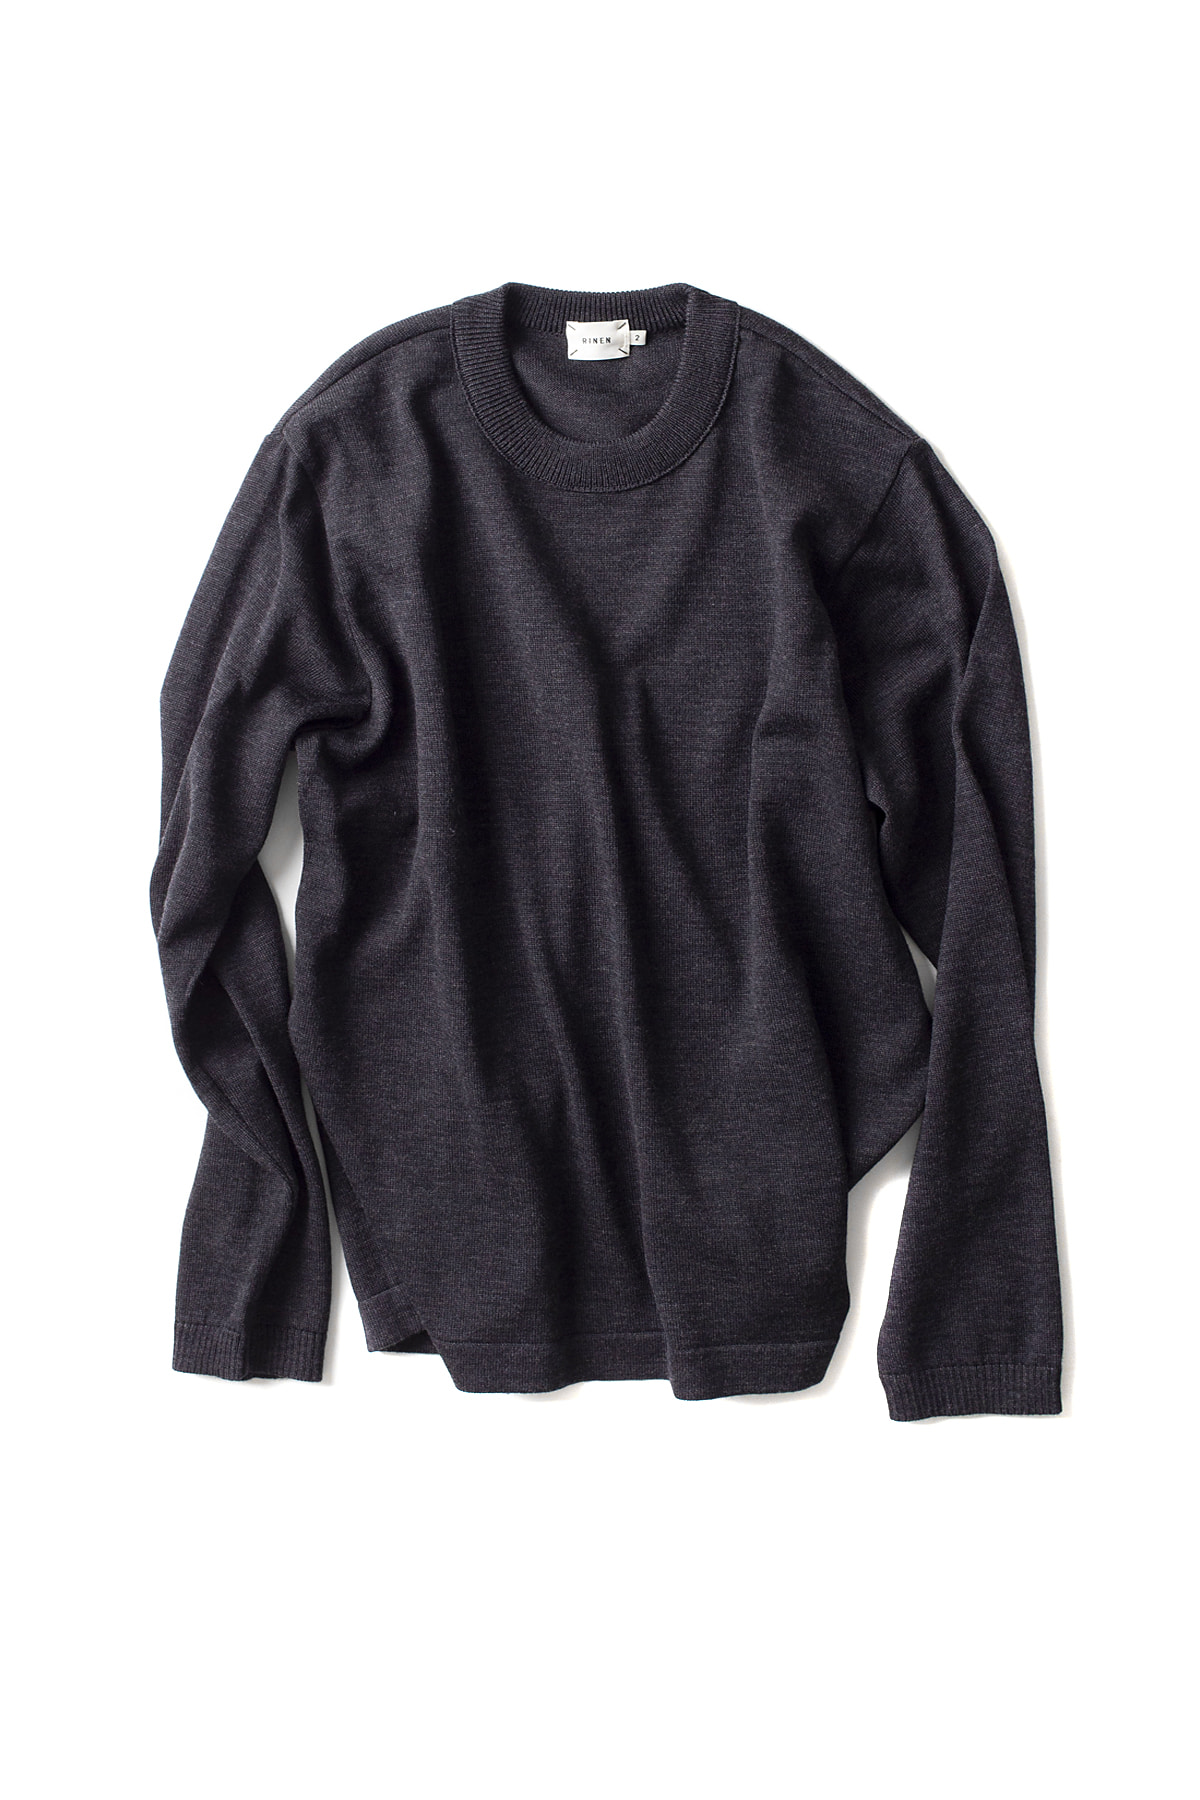 RINEN : Wool Knit Crewneck 13981 (Dark Grey)